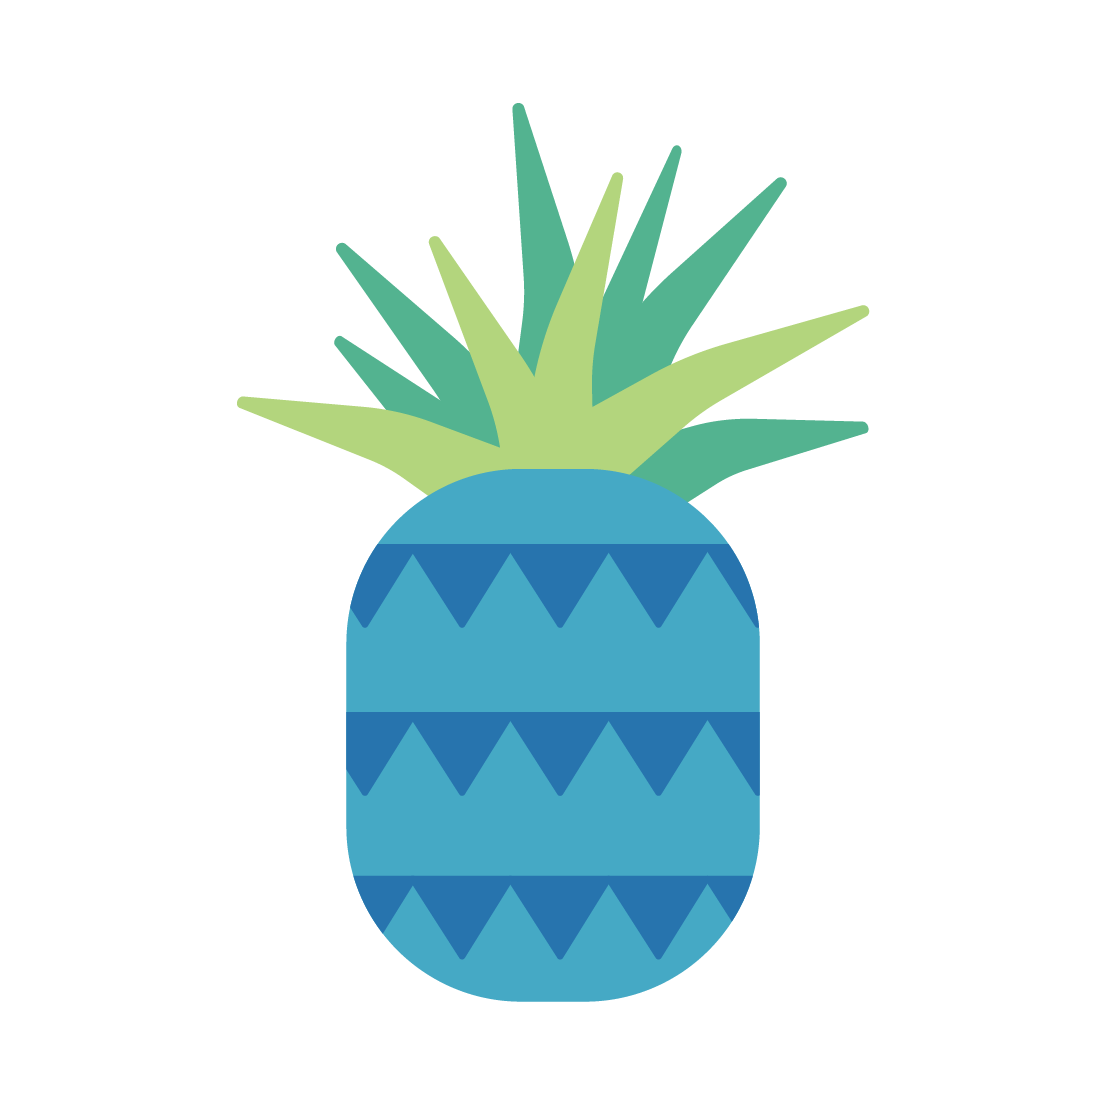 Social-Giphys_Pineapple-Brand-Colors.png